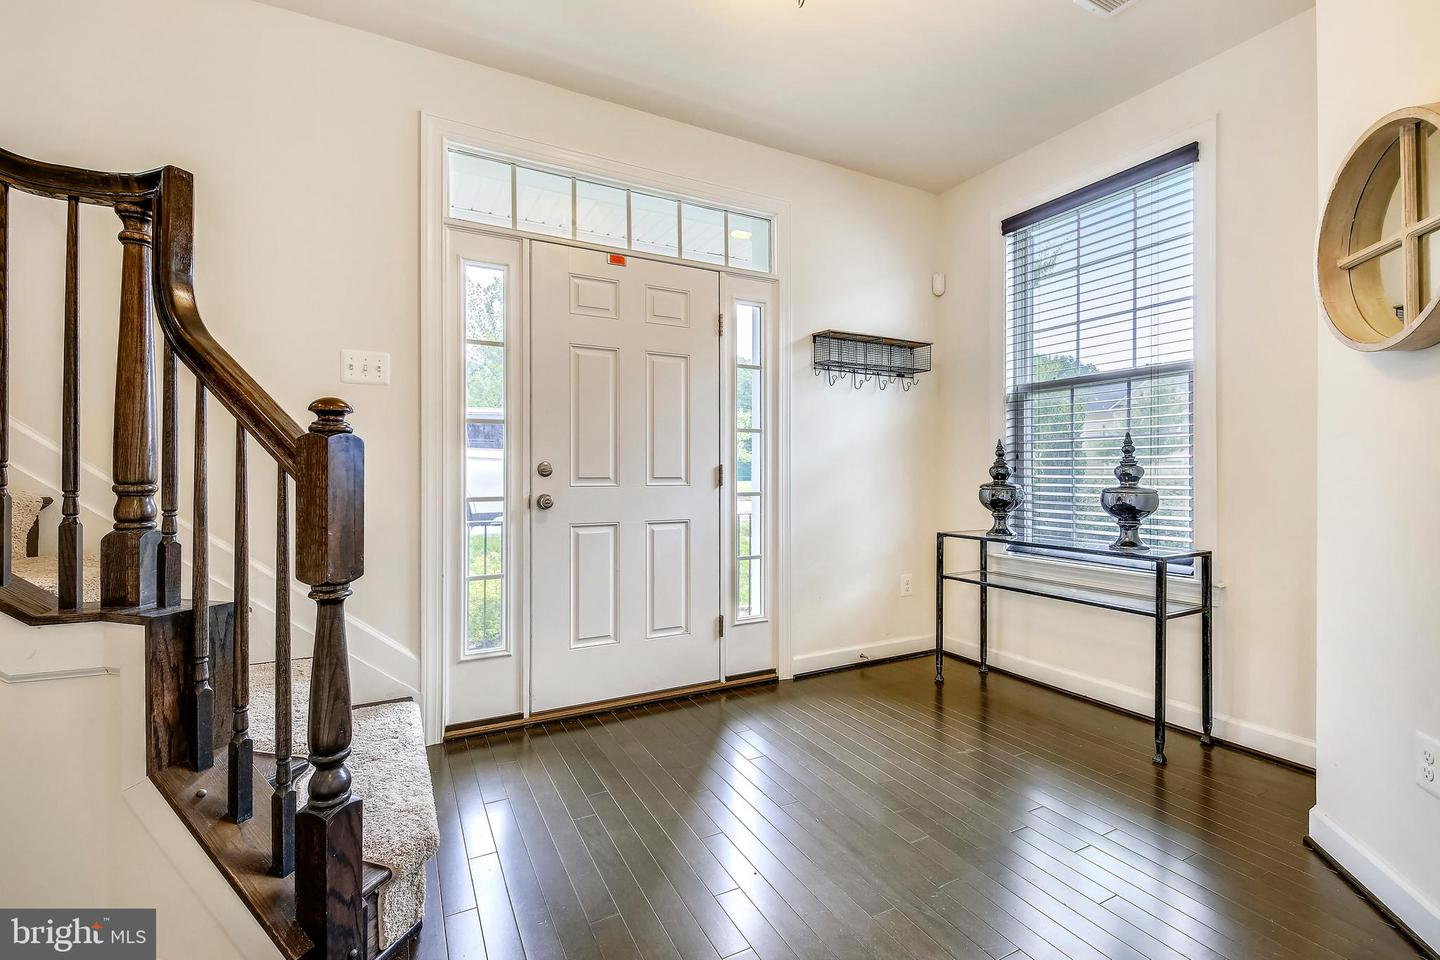 Additional photo for property listing at 160 Autumn View Dr Gaithersburg, Maryland 20878 United States